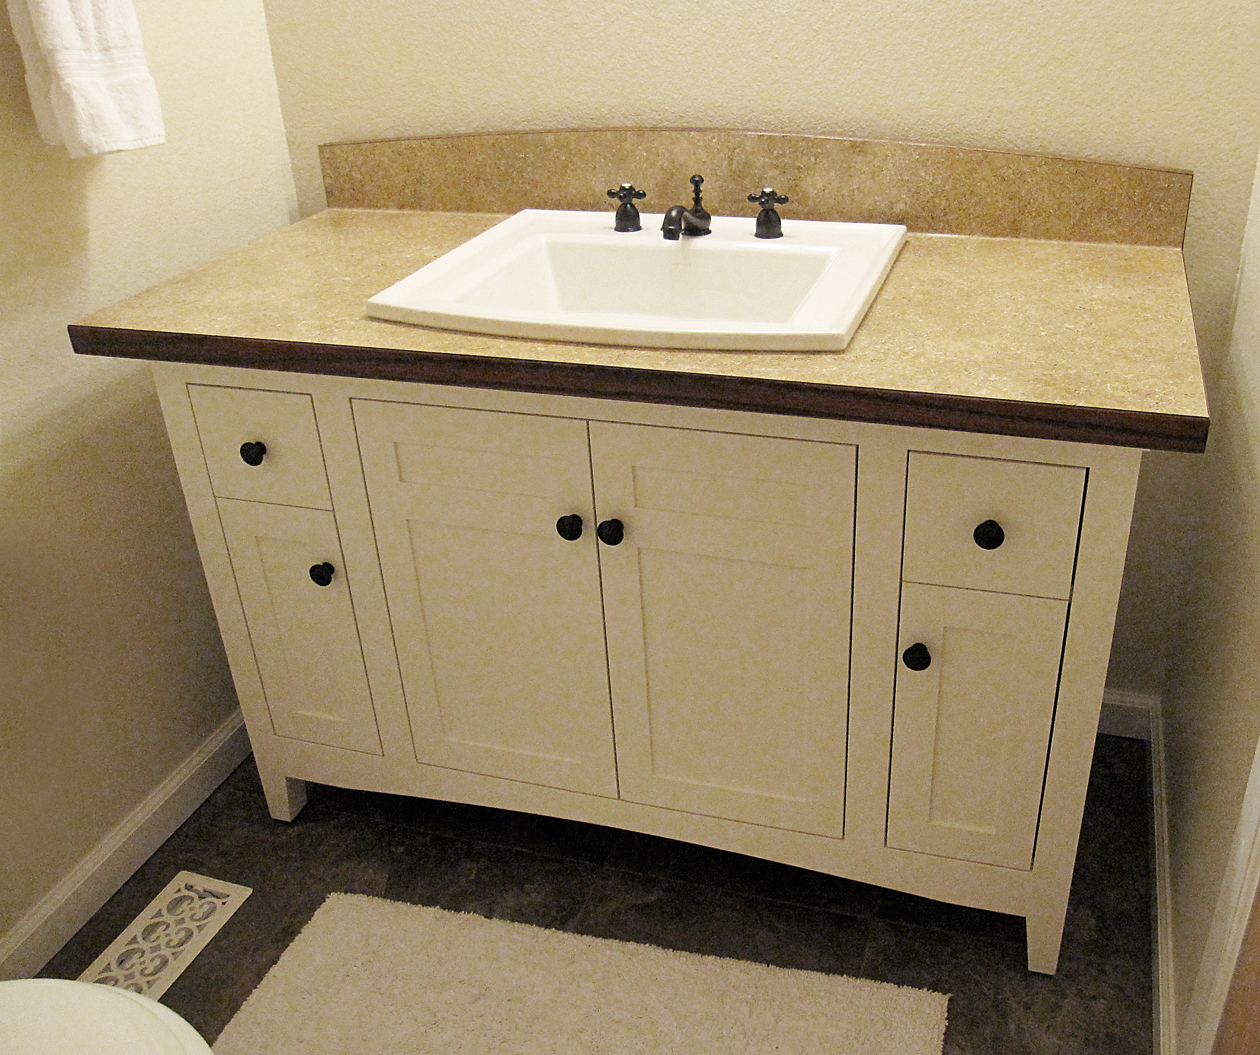 cath easy vanity woodworking plans wood plans us uk ca